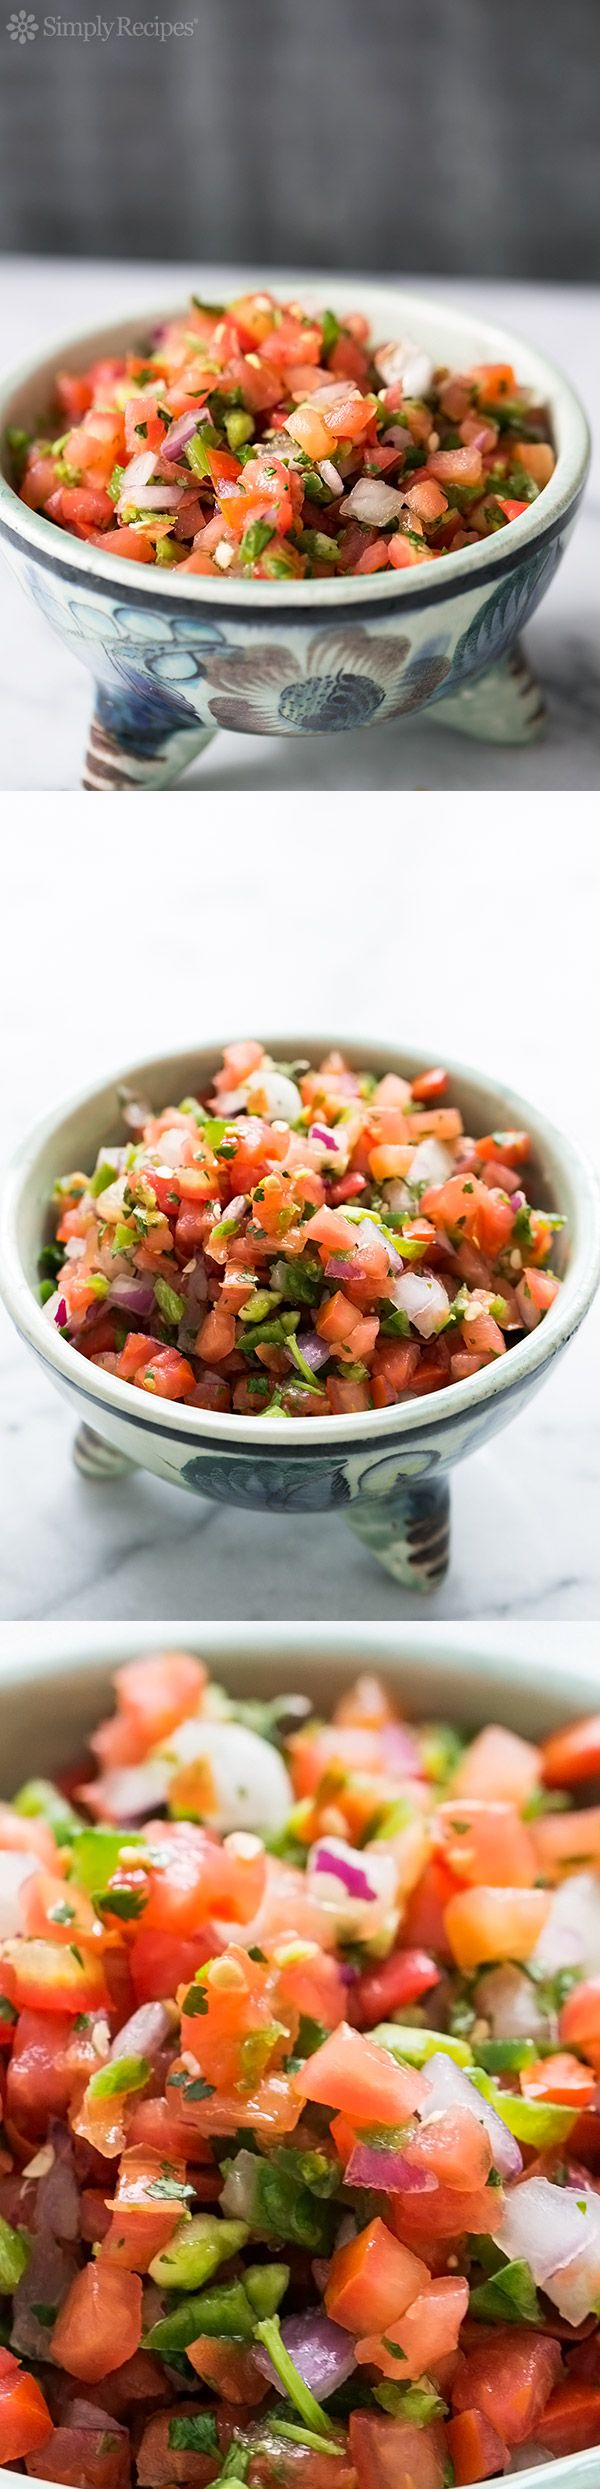 Fresh Pico de Gallo Mexican salsa! Chopped fresh tomatoes, jalapeño chiles, red onion, cilantro, and lime. Great dip to bring with tortilla chips to a summer holiday potluck! On SimplyRecipes.com